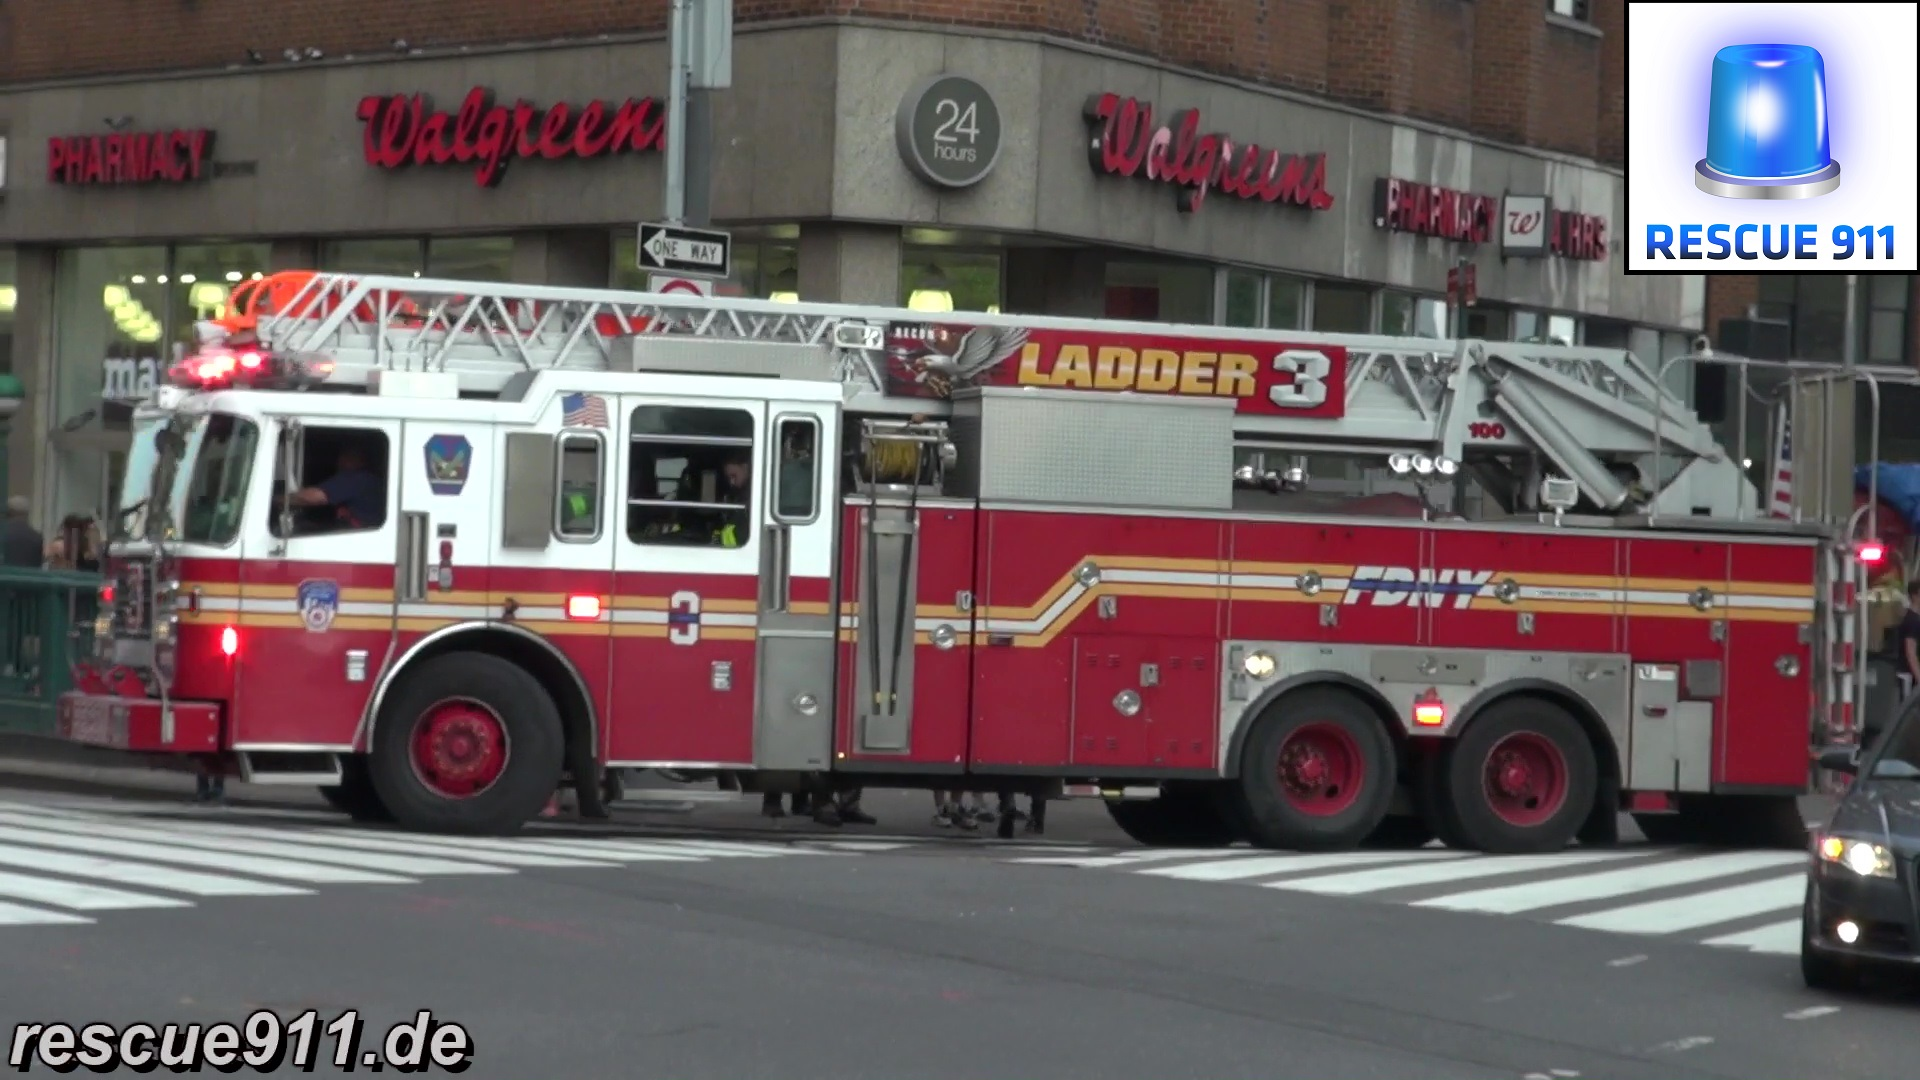 Ladder 3 FDNY (stream)